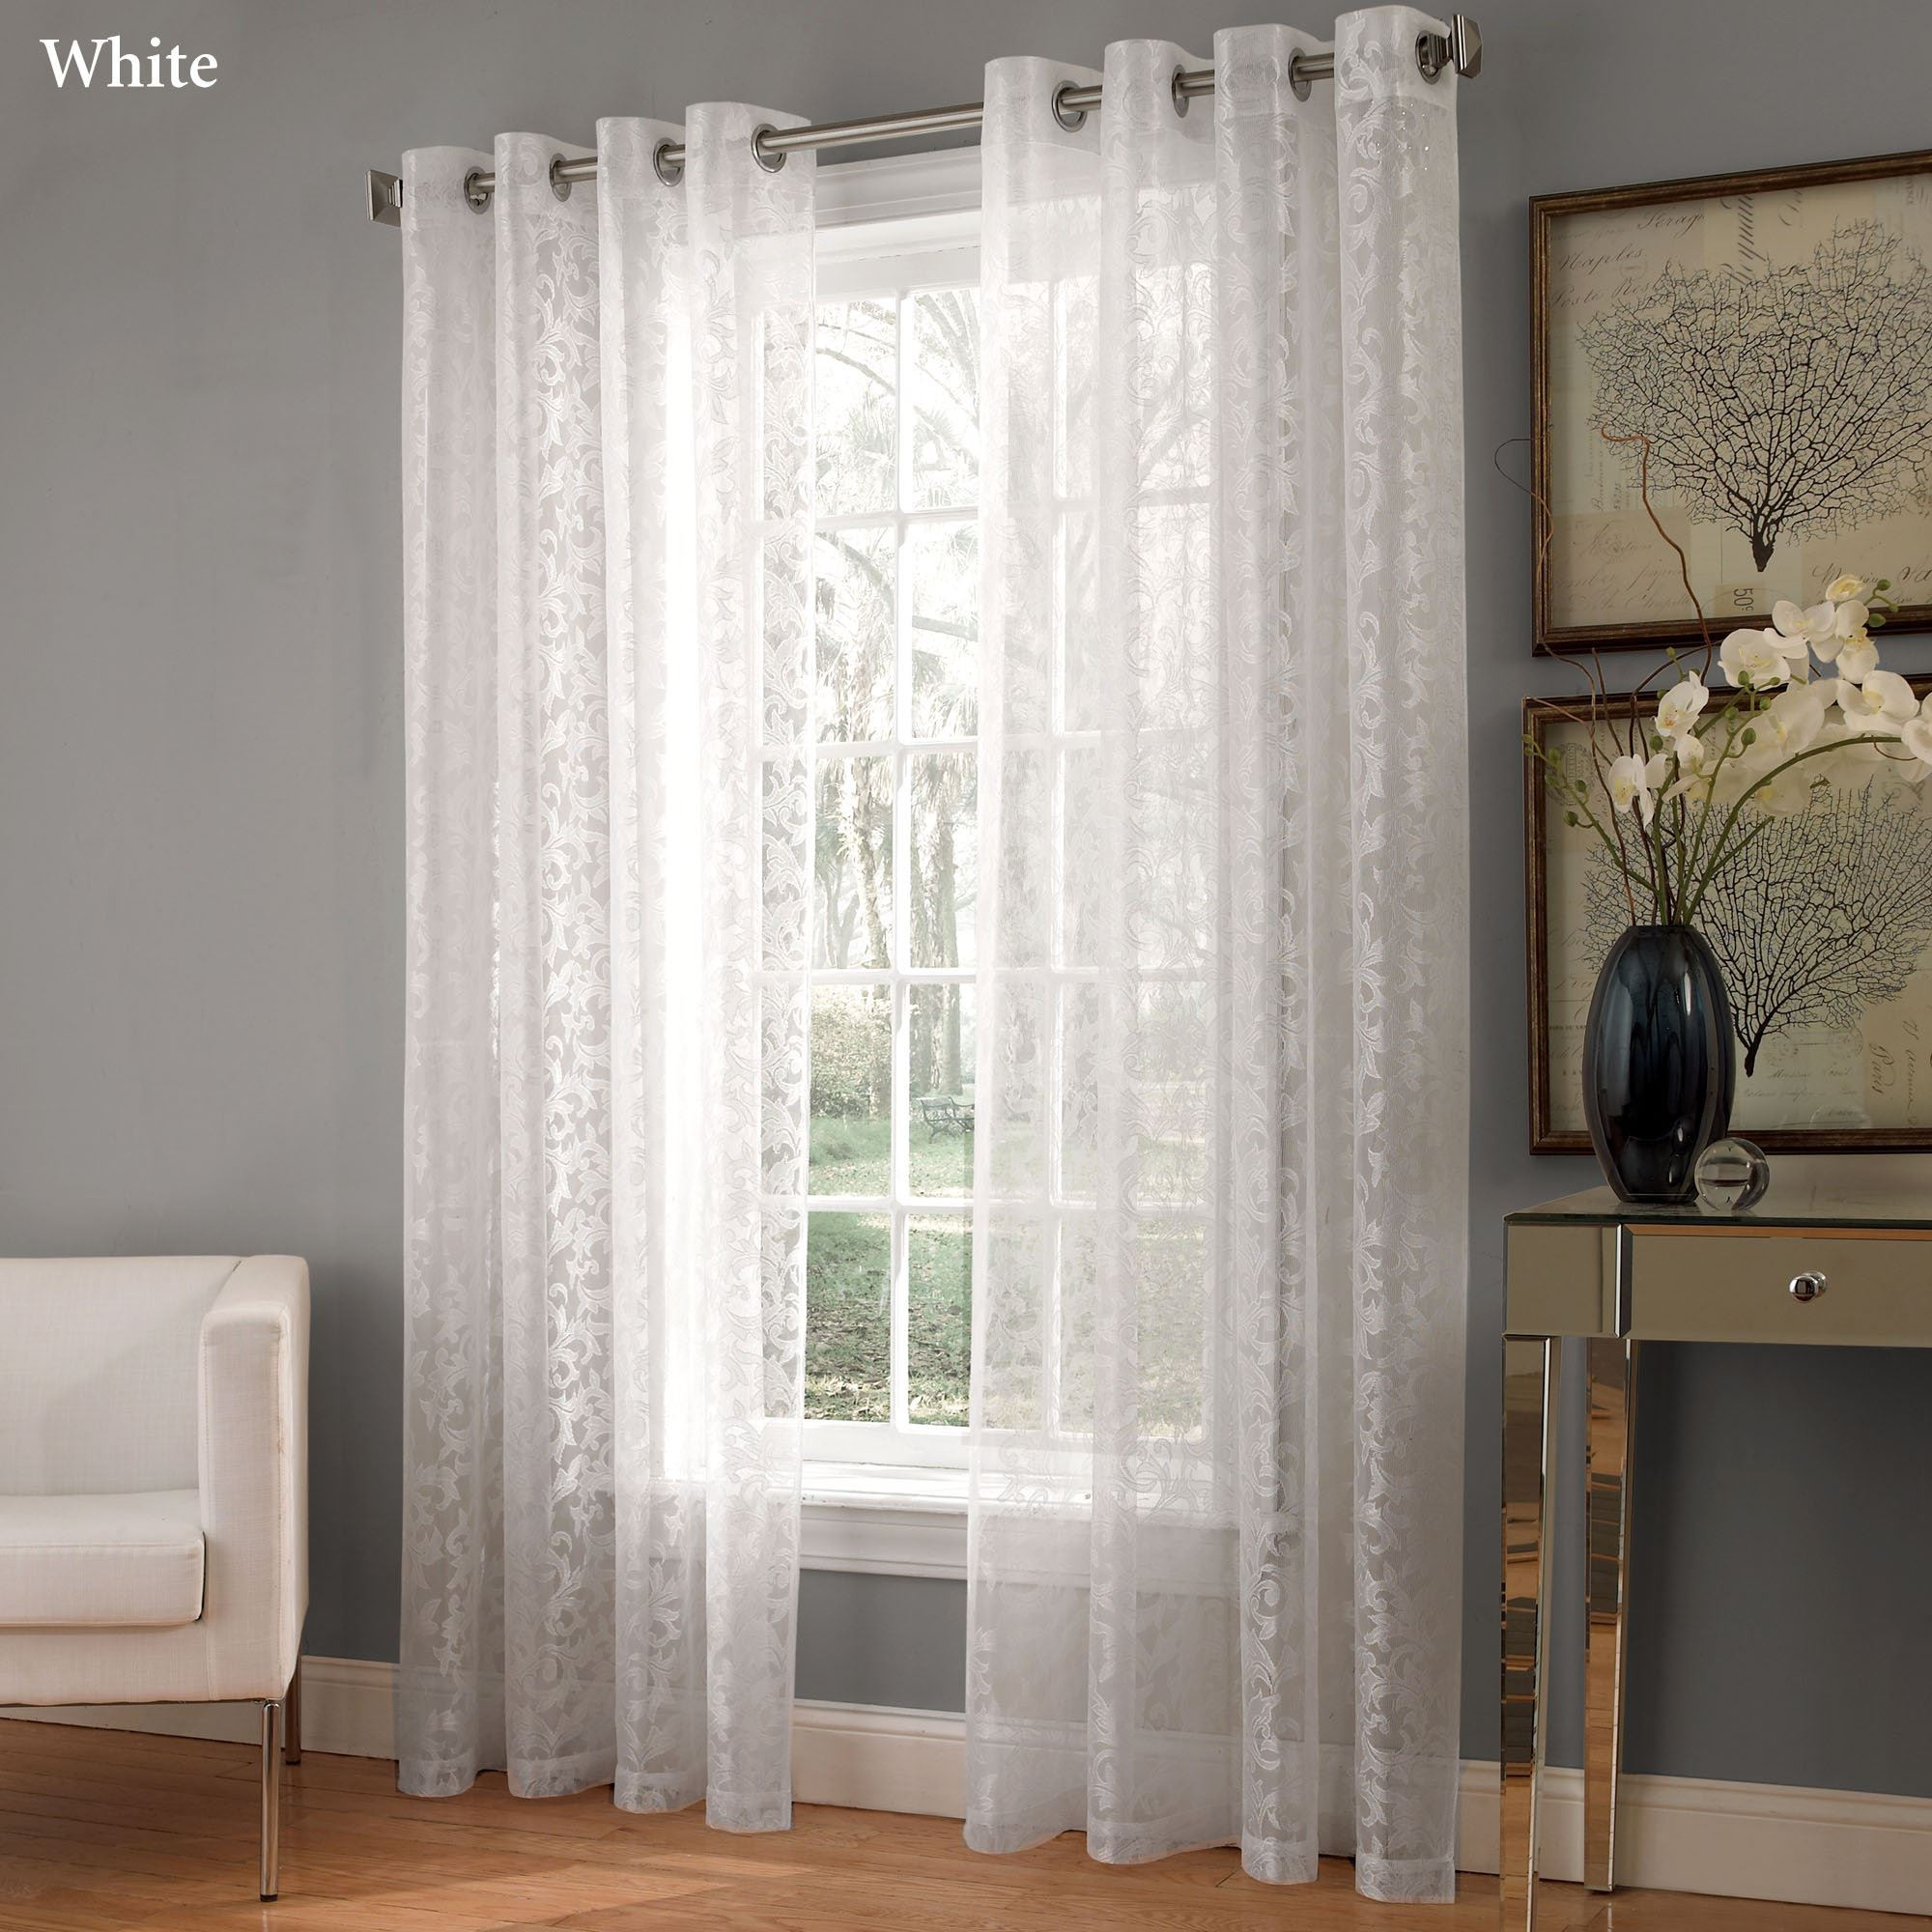 curtains essentials home room sheer n fmt window c target treatments hei wid decor panel qlt curtain p drapes